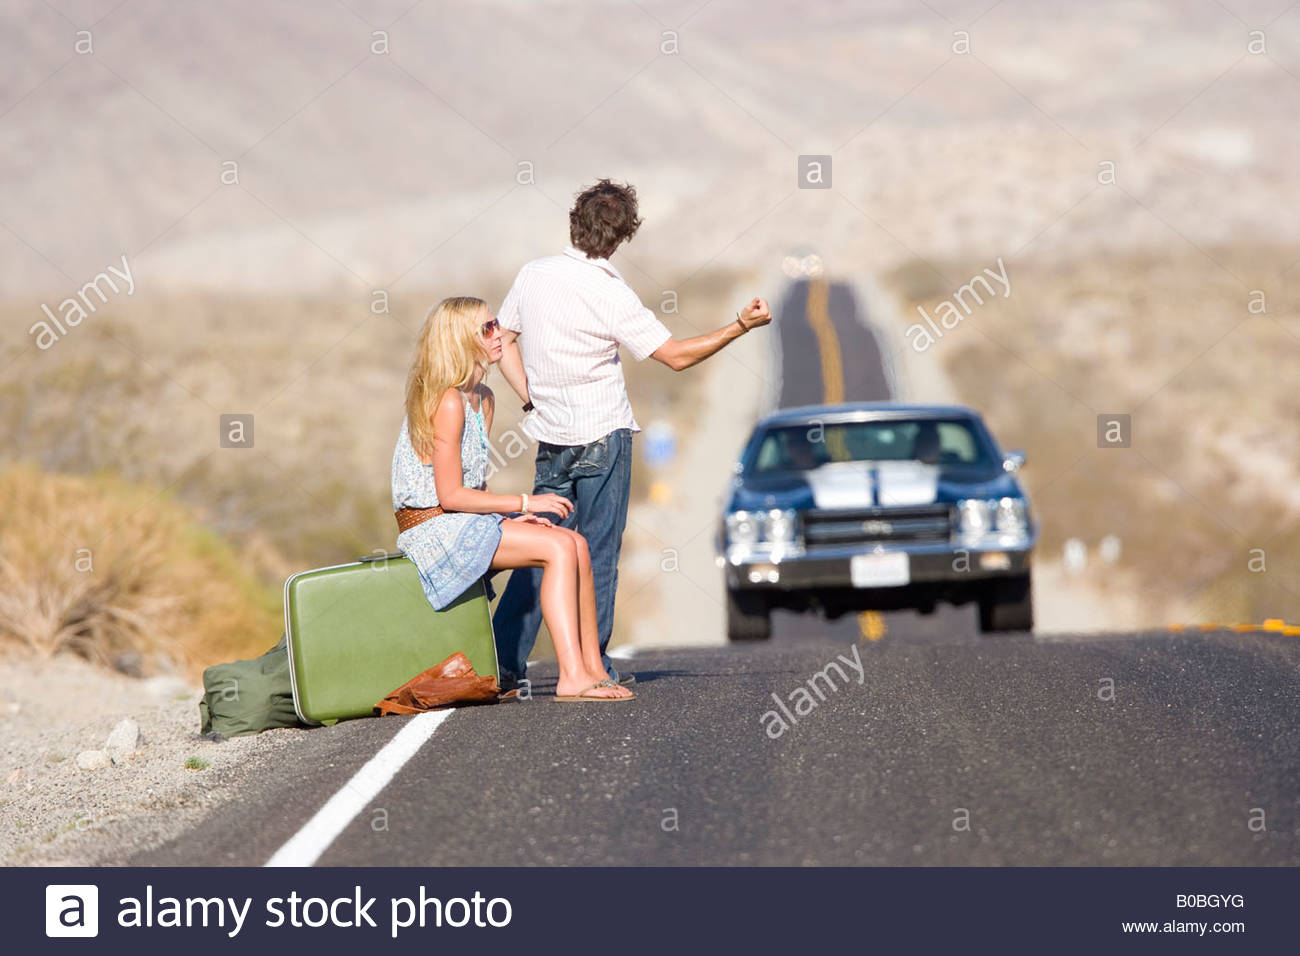 Hitchhikers By Side Of Road >> Young Couple Hitchhiking On Desert Road Side View Stock Photo